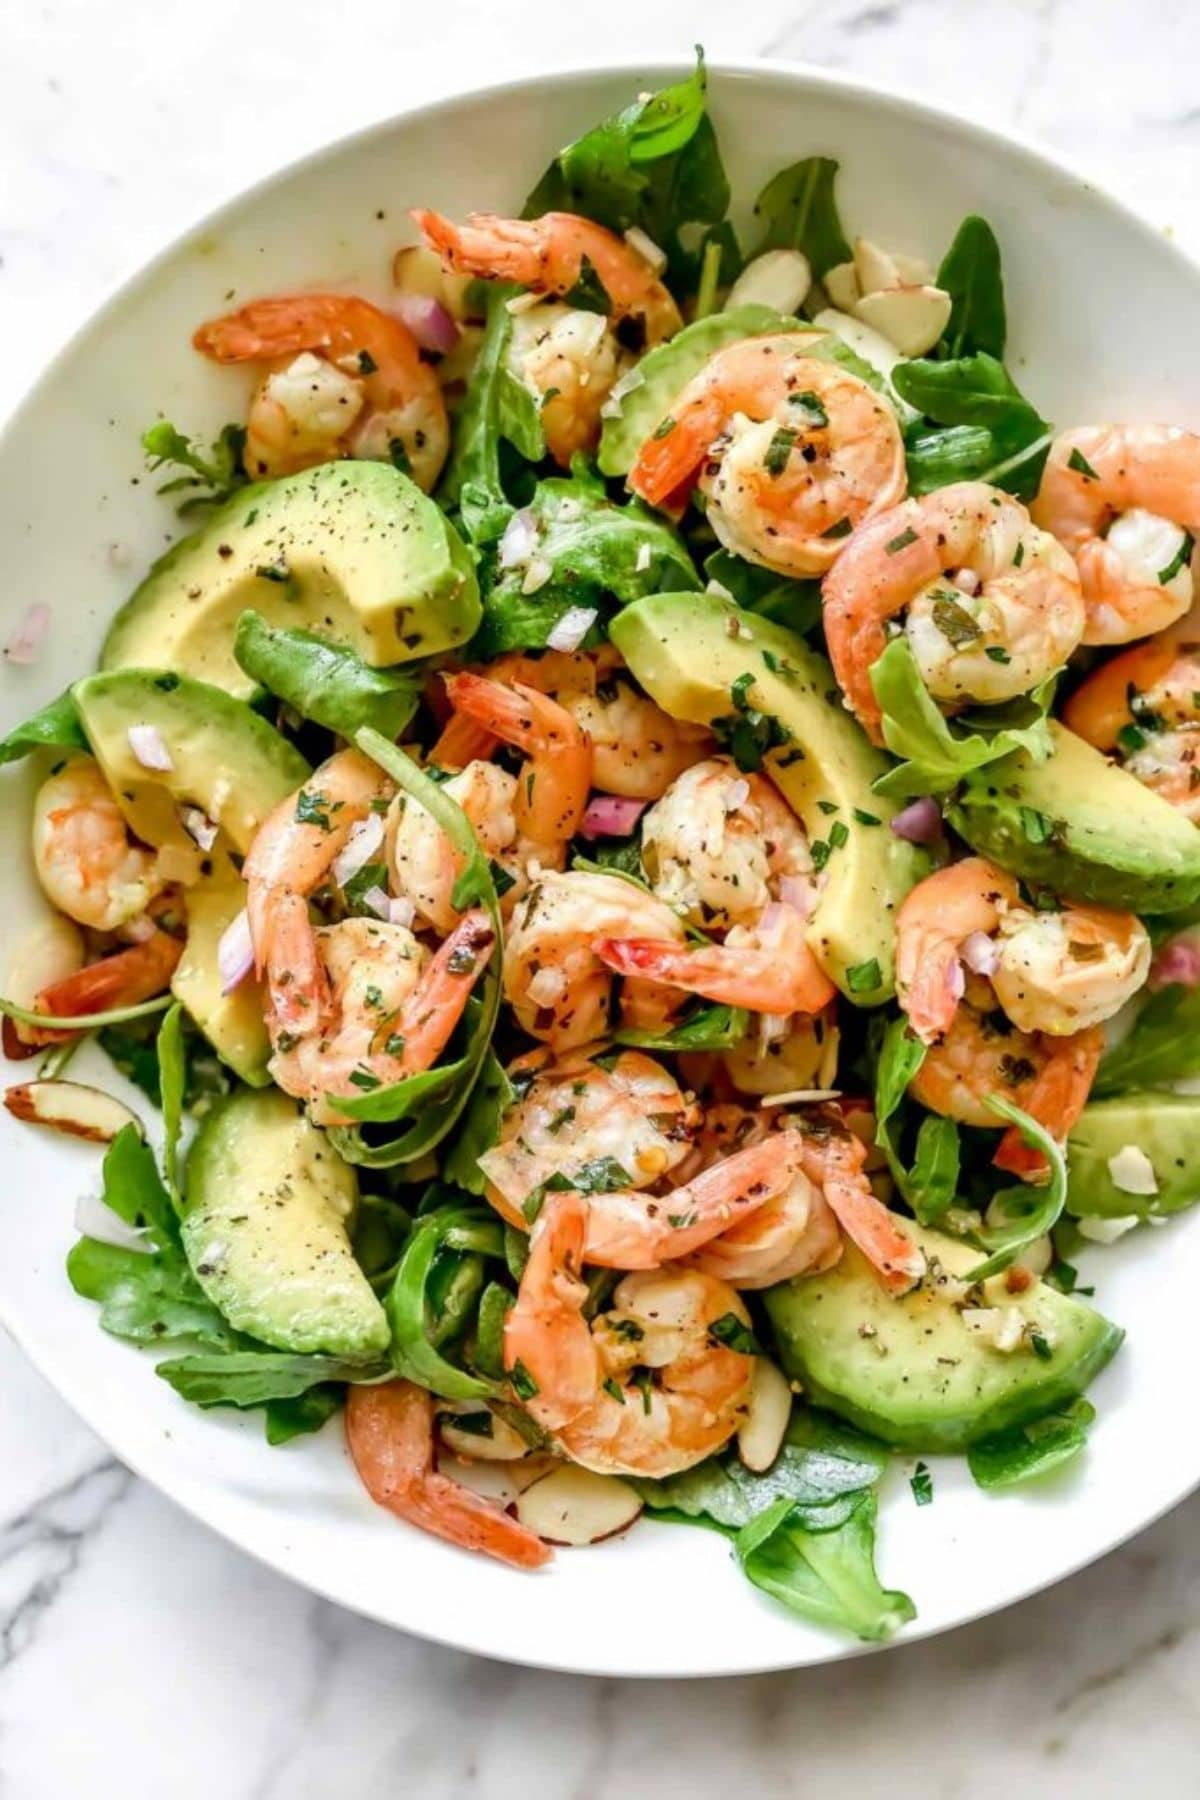 Shrimp and avocado on salad greens in white bowl on marble counter